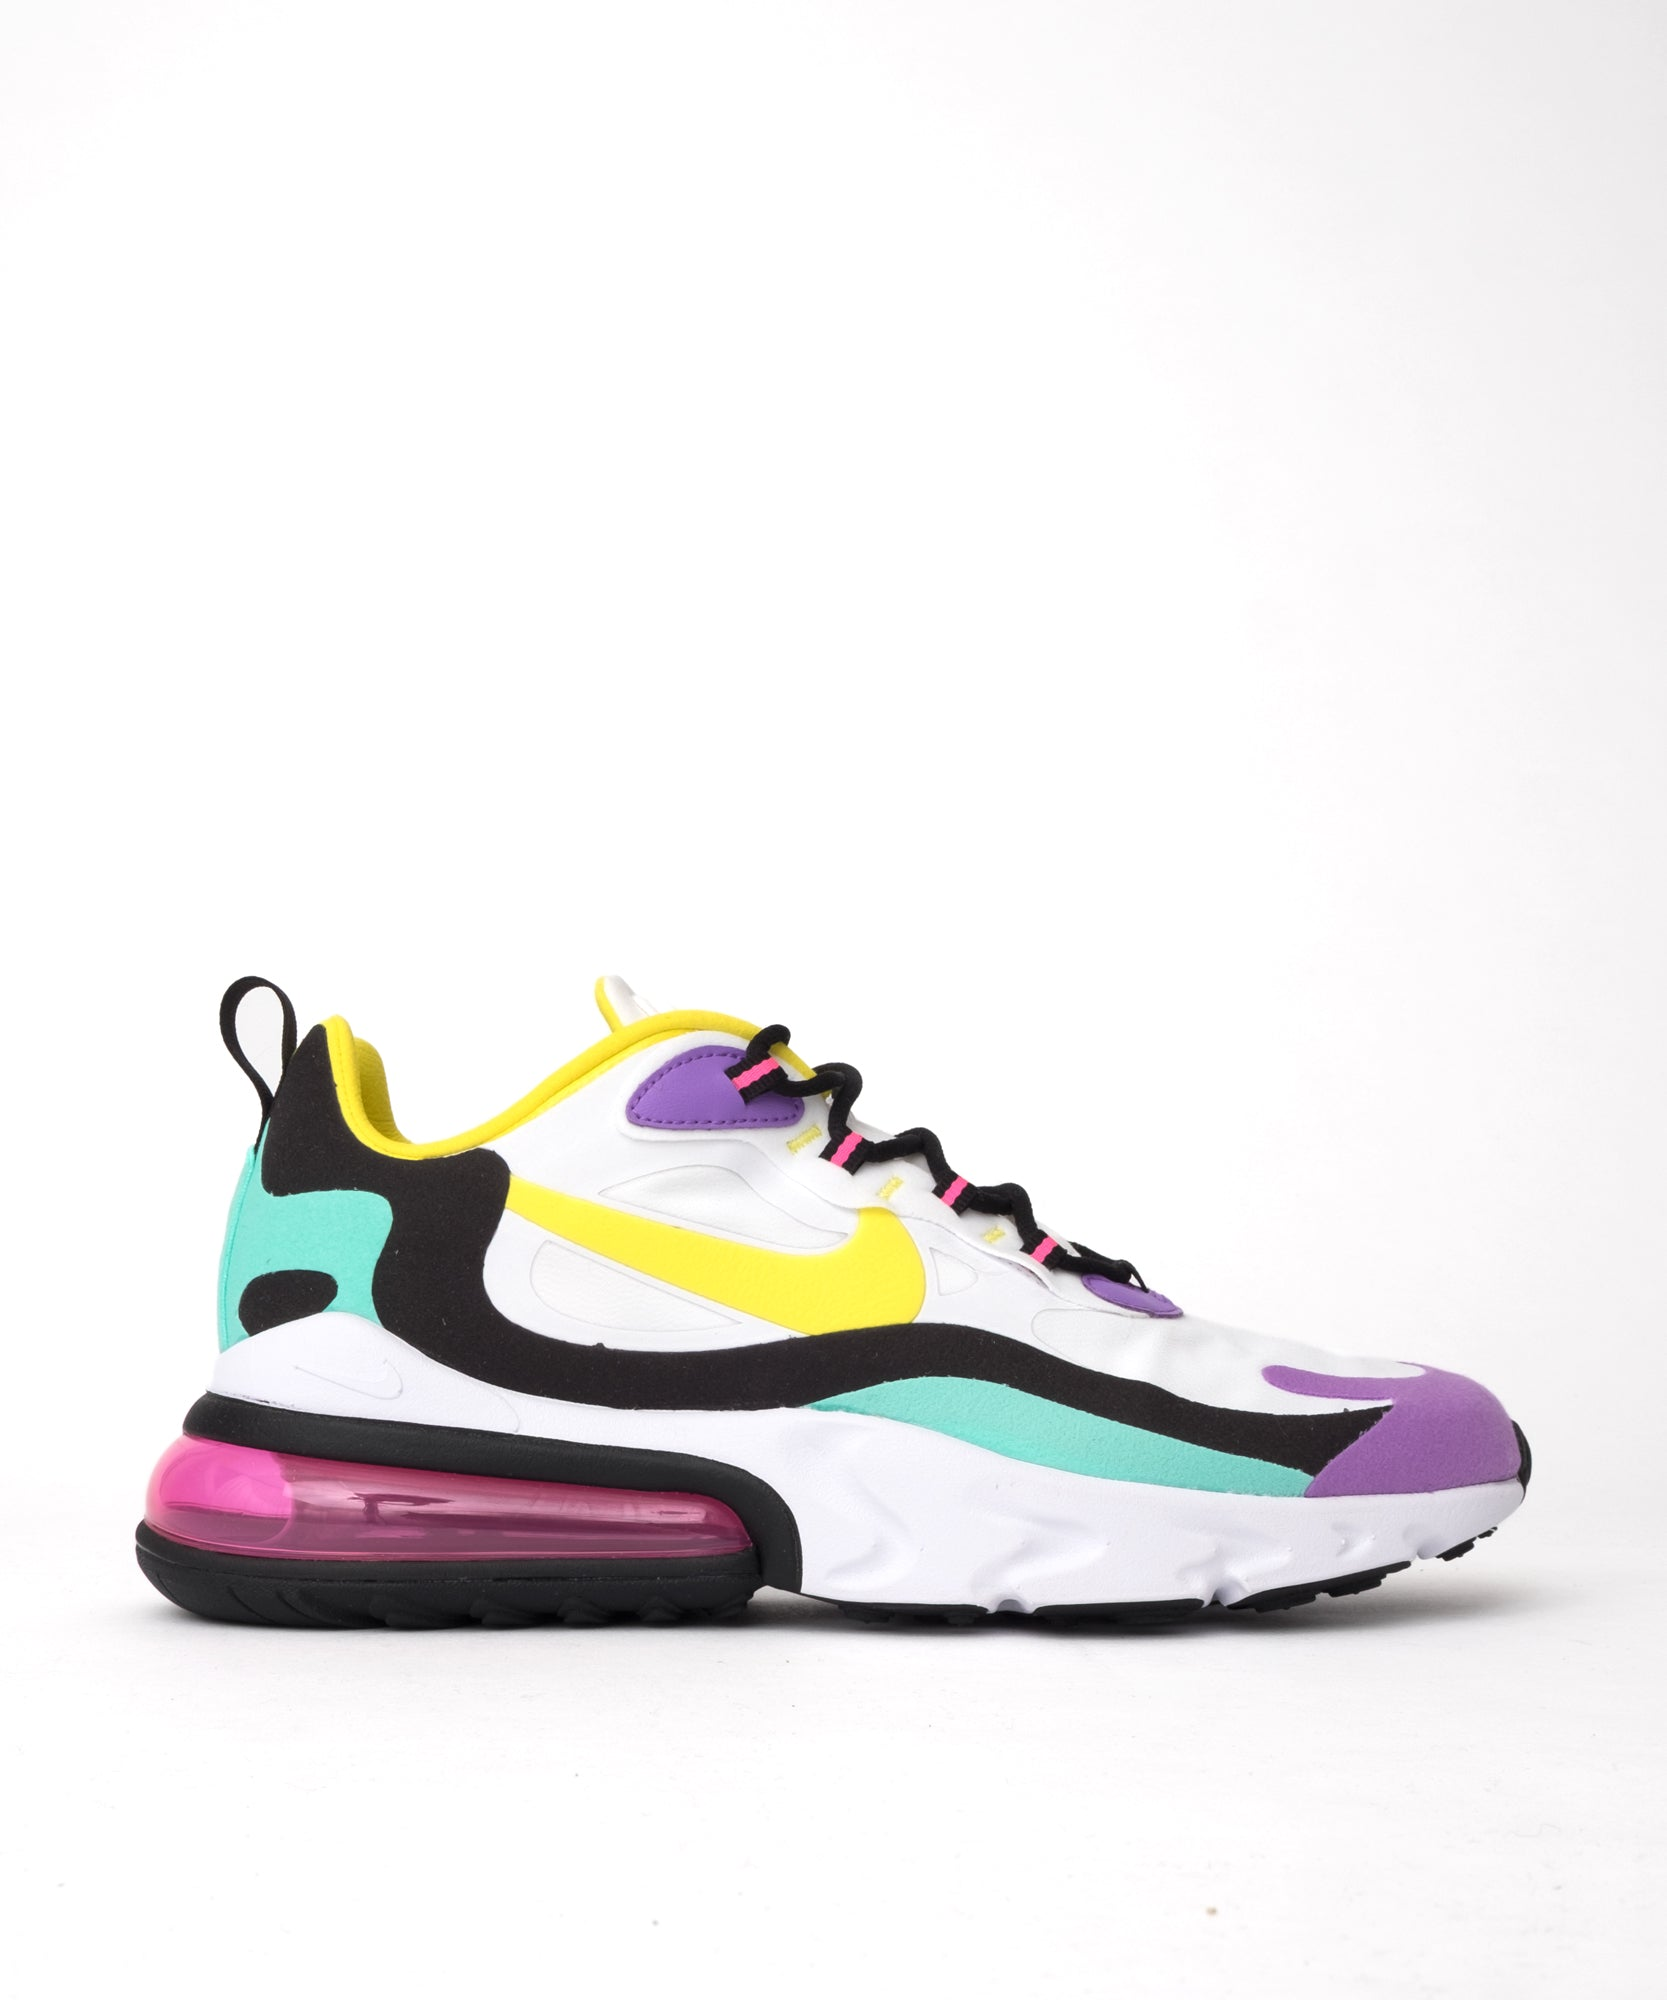 new style 79d33 17d17 Nike Air Max 270 React (White/Dynamic Yellow-Black-Bright Violet)